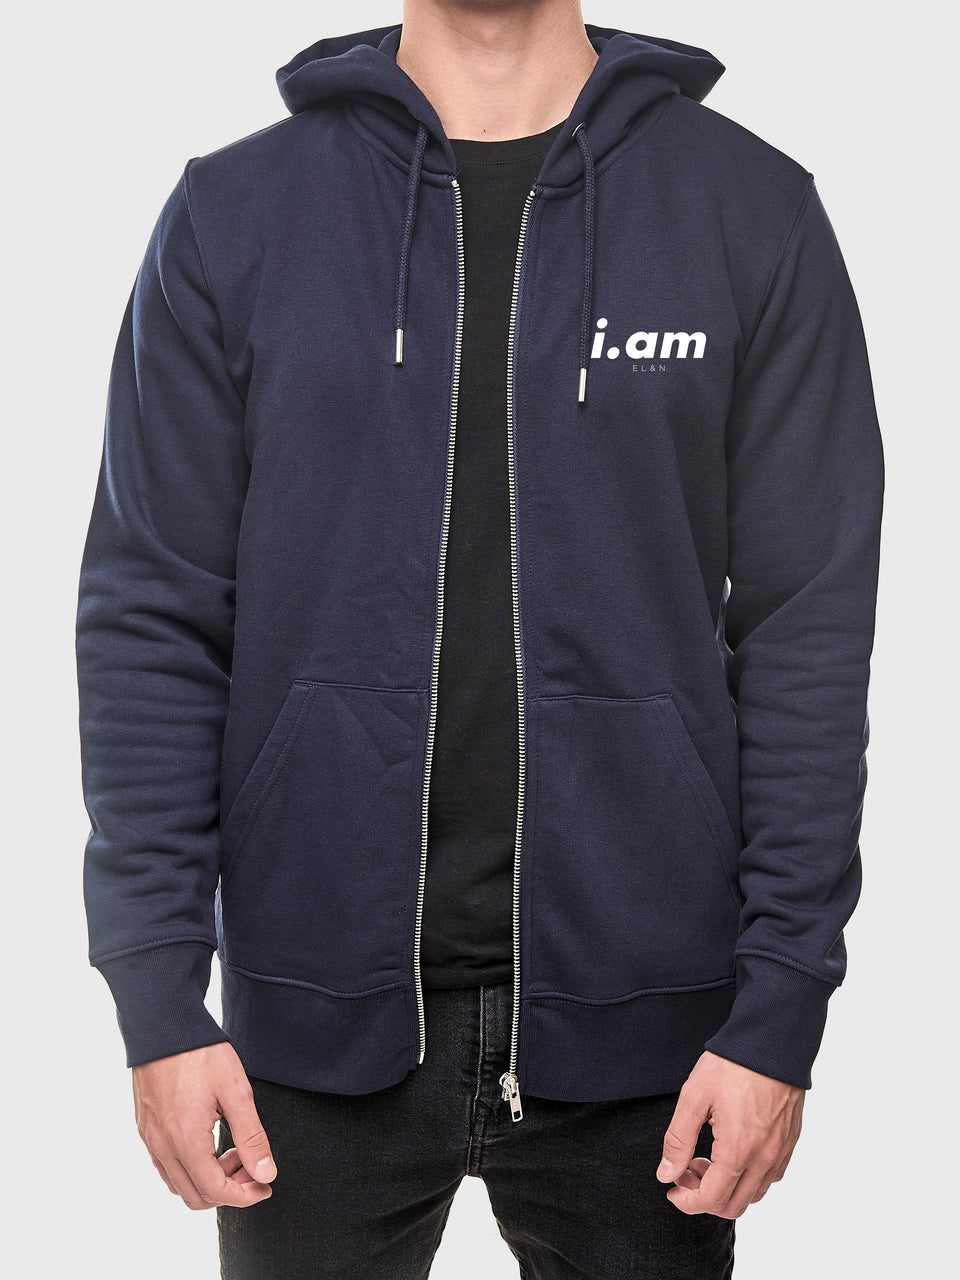 The connect - Black / Navy - Unisex zip up hoodie